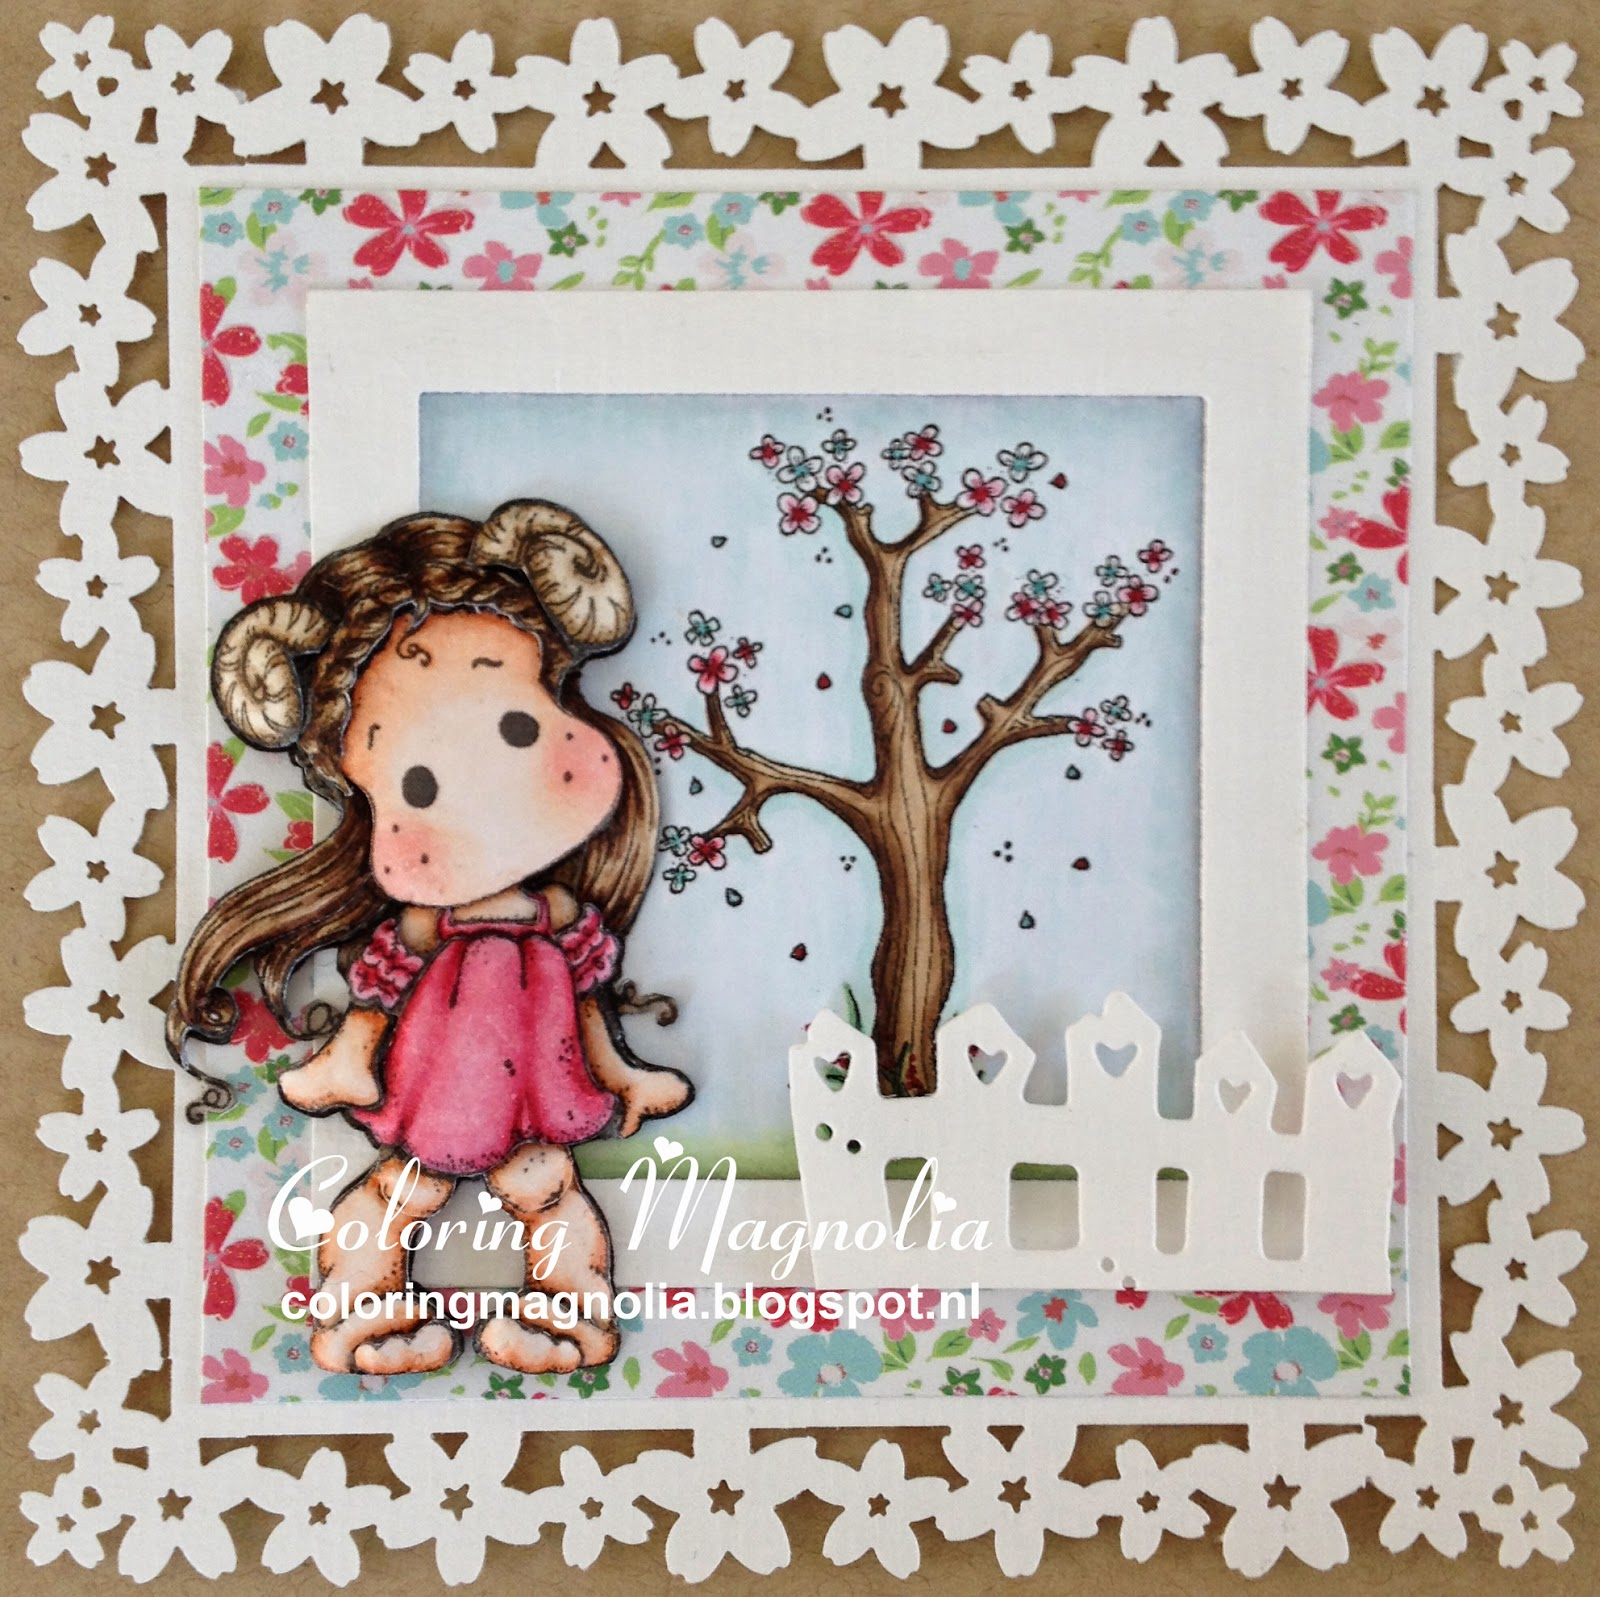 Coloring Magnolia Stamp 2014 Zodiac Collection - Aries Tilda - 3D Paper Piecing Card